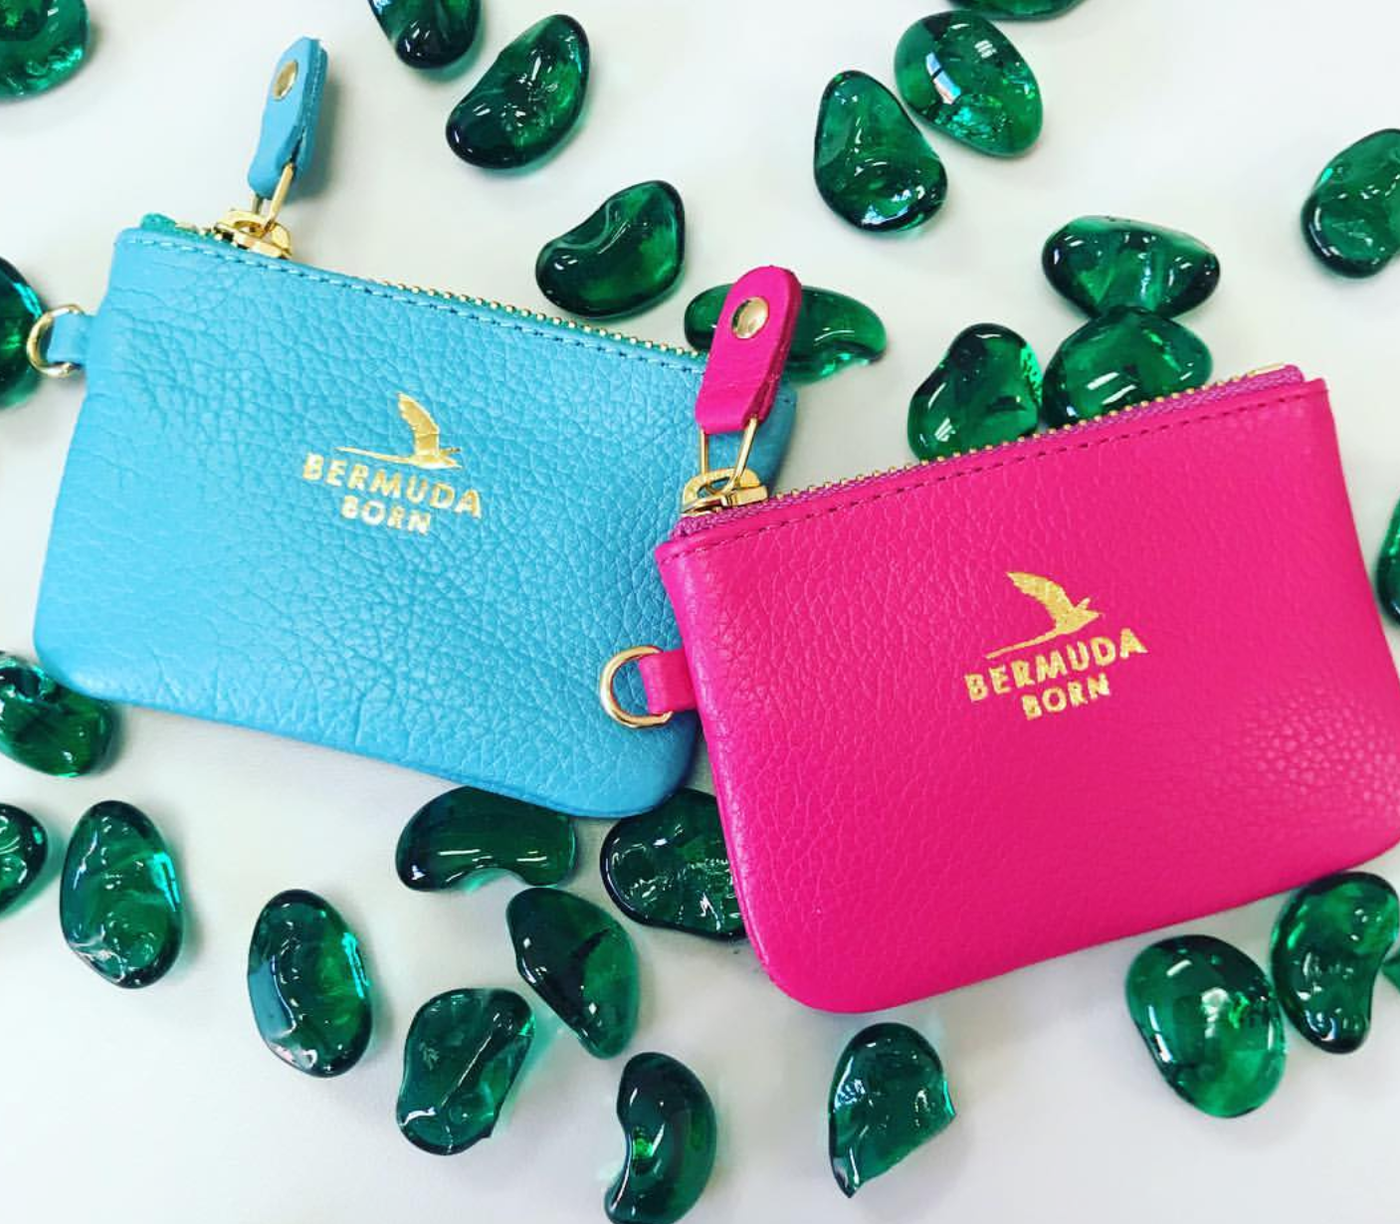 Pink and Aqua Pebble Leather Coin & Card Cases - Bermuda Born